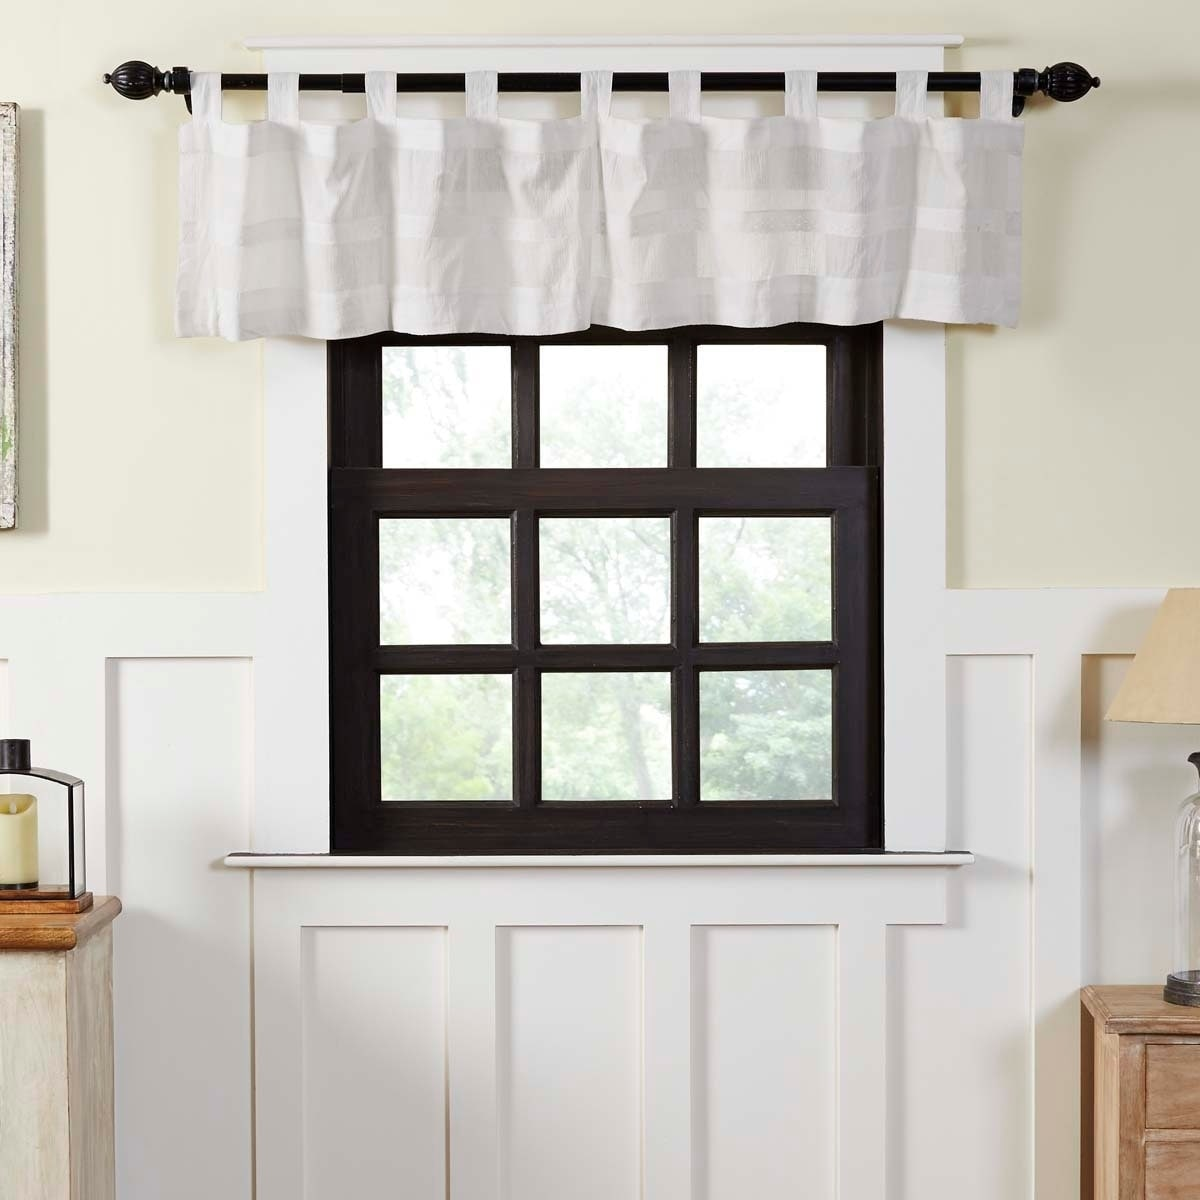 Farmhouse Kitchen Curtains VHC Quinn Valance Tab Top Cotton Solid Color  Lace Sheer